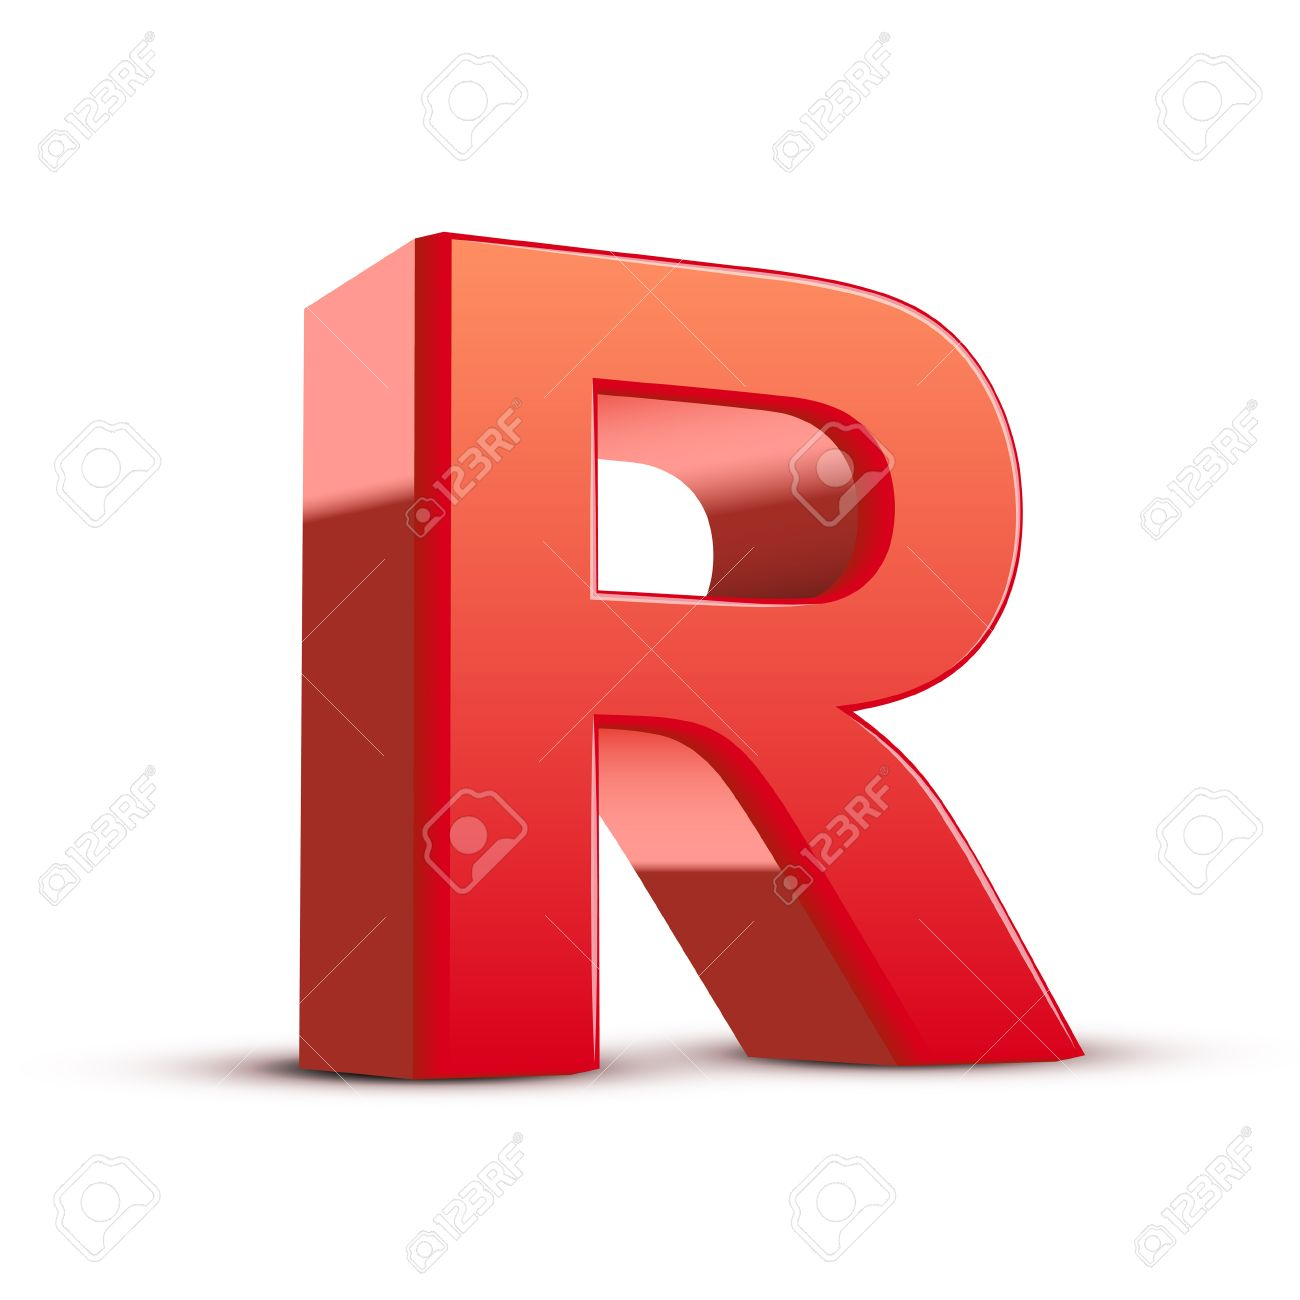 3d Red Letter R Isolated White Background Royalty Free Cliparts